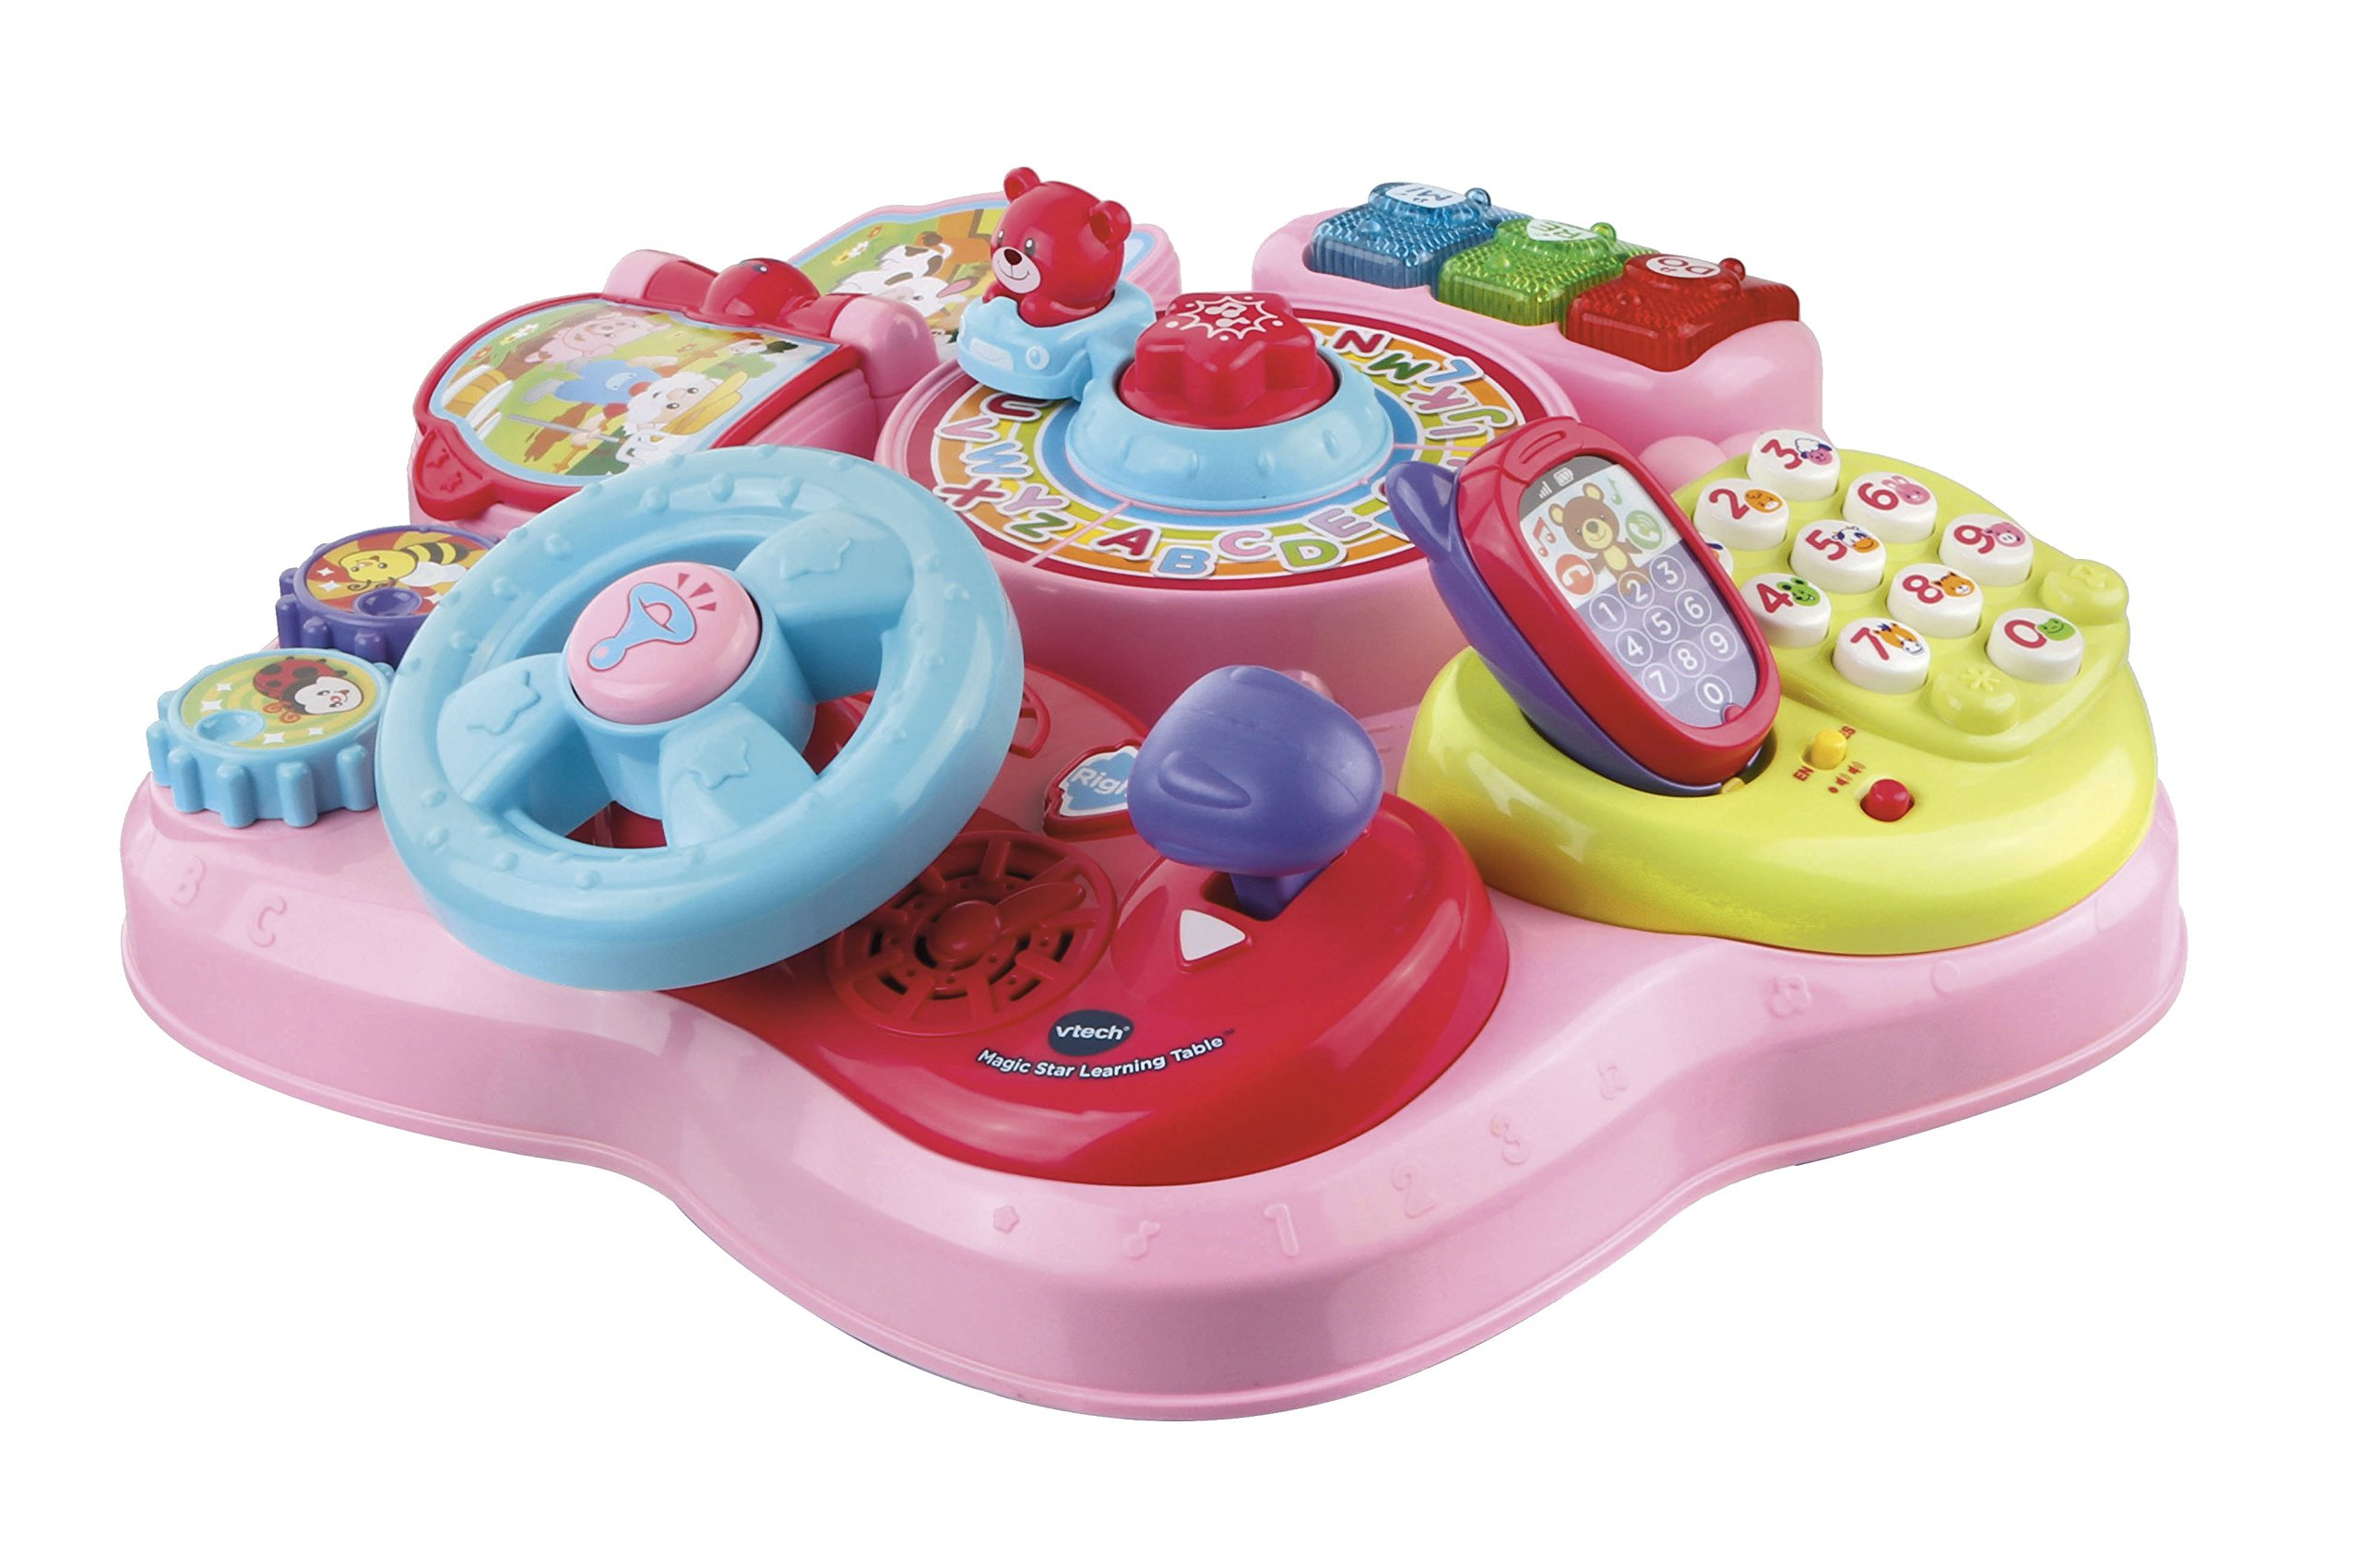 VTech Magic Star Learning Table, Pink (Frustration Free Packaging) by VTech (Image #2)